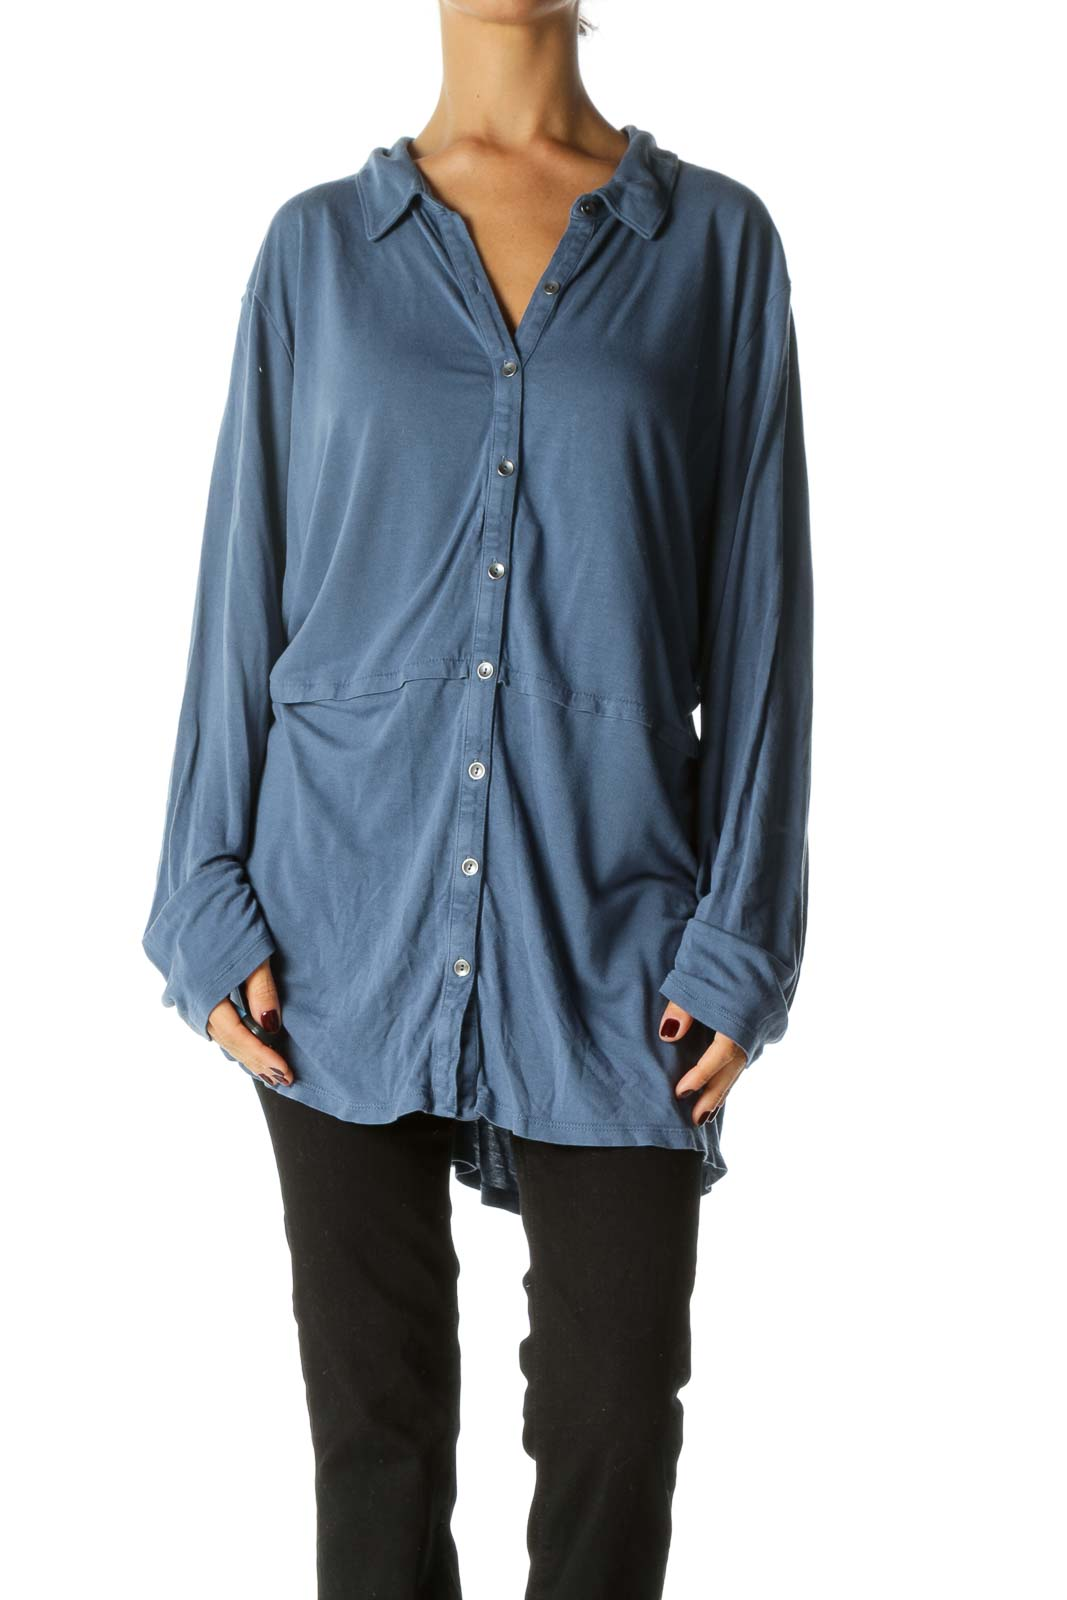 Blue Buttoned Long Sleeve Light Stretch Top